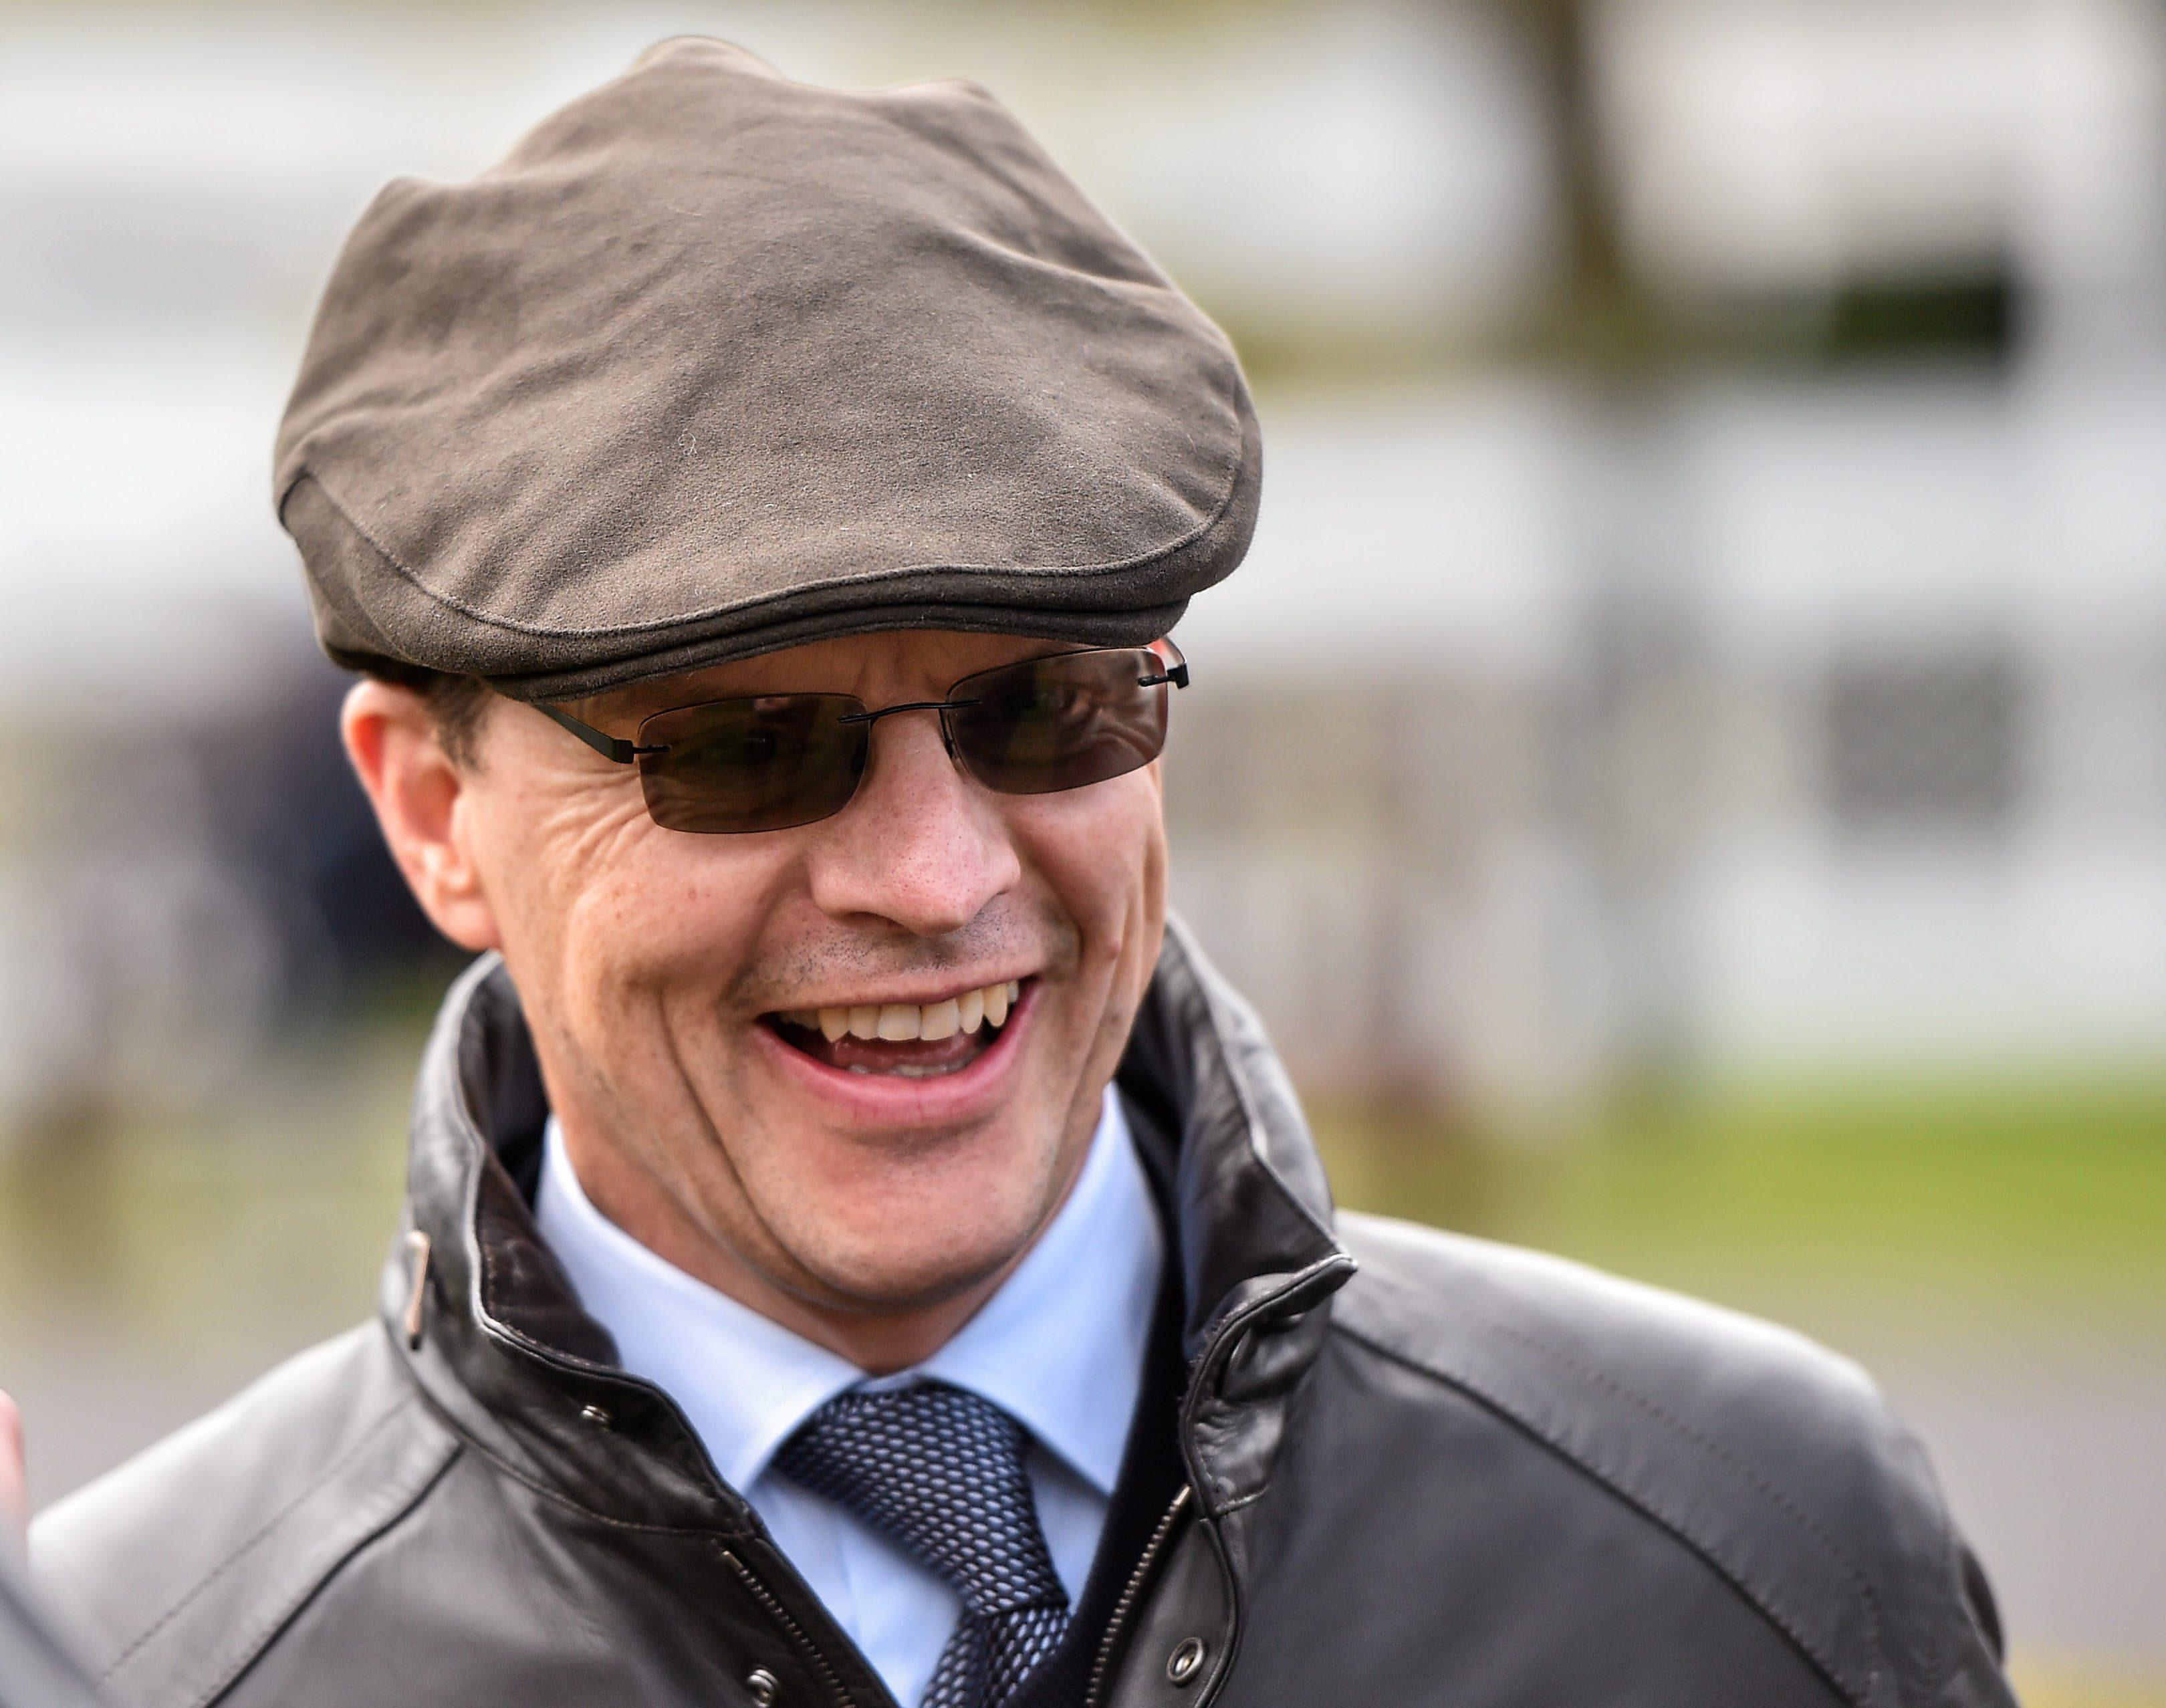 Aidan O'Brien sends Clear Skies over from Ireland